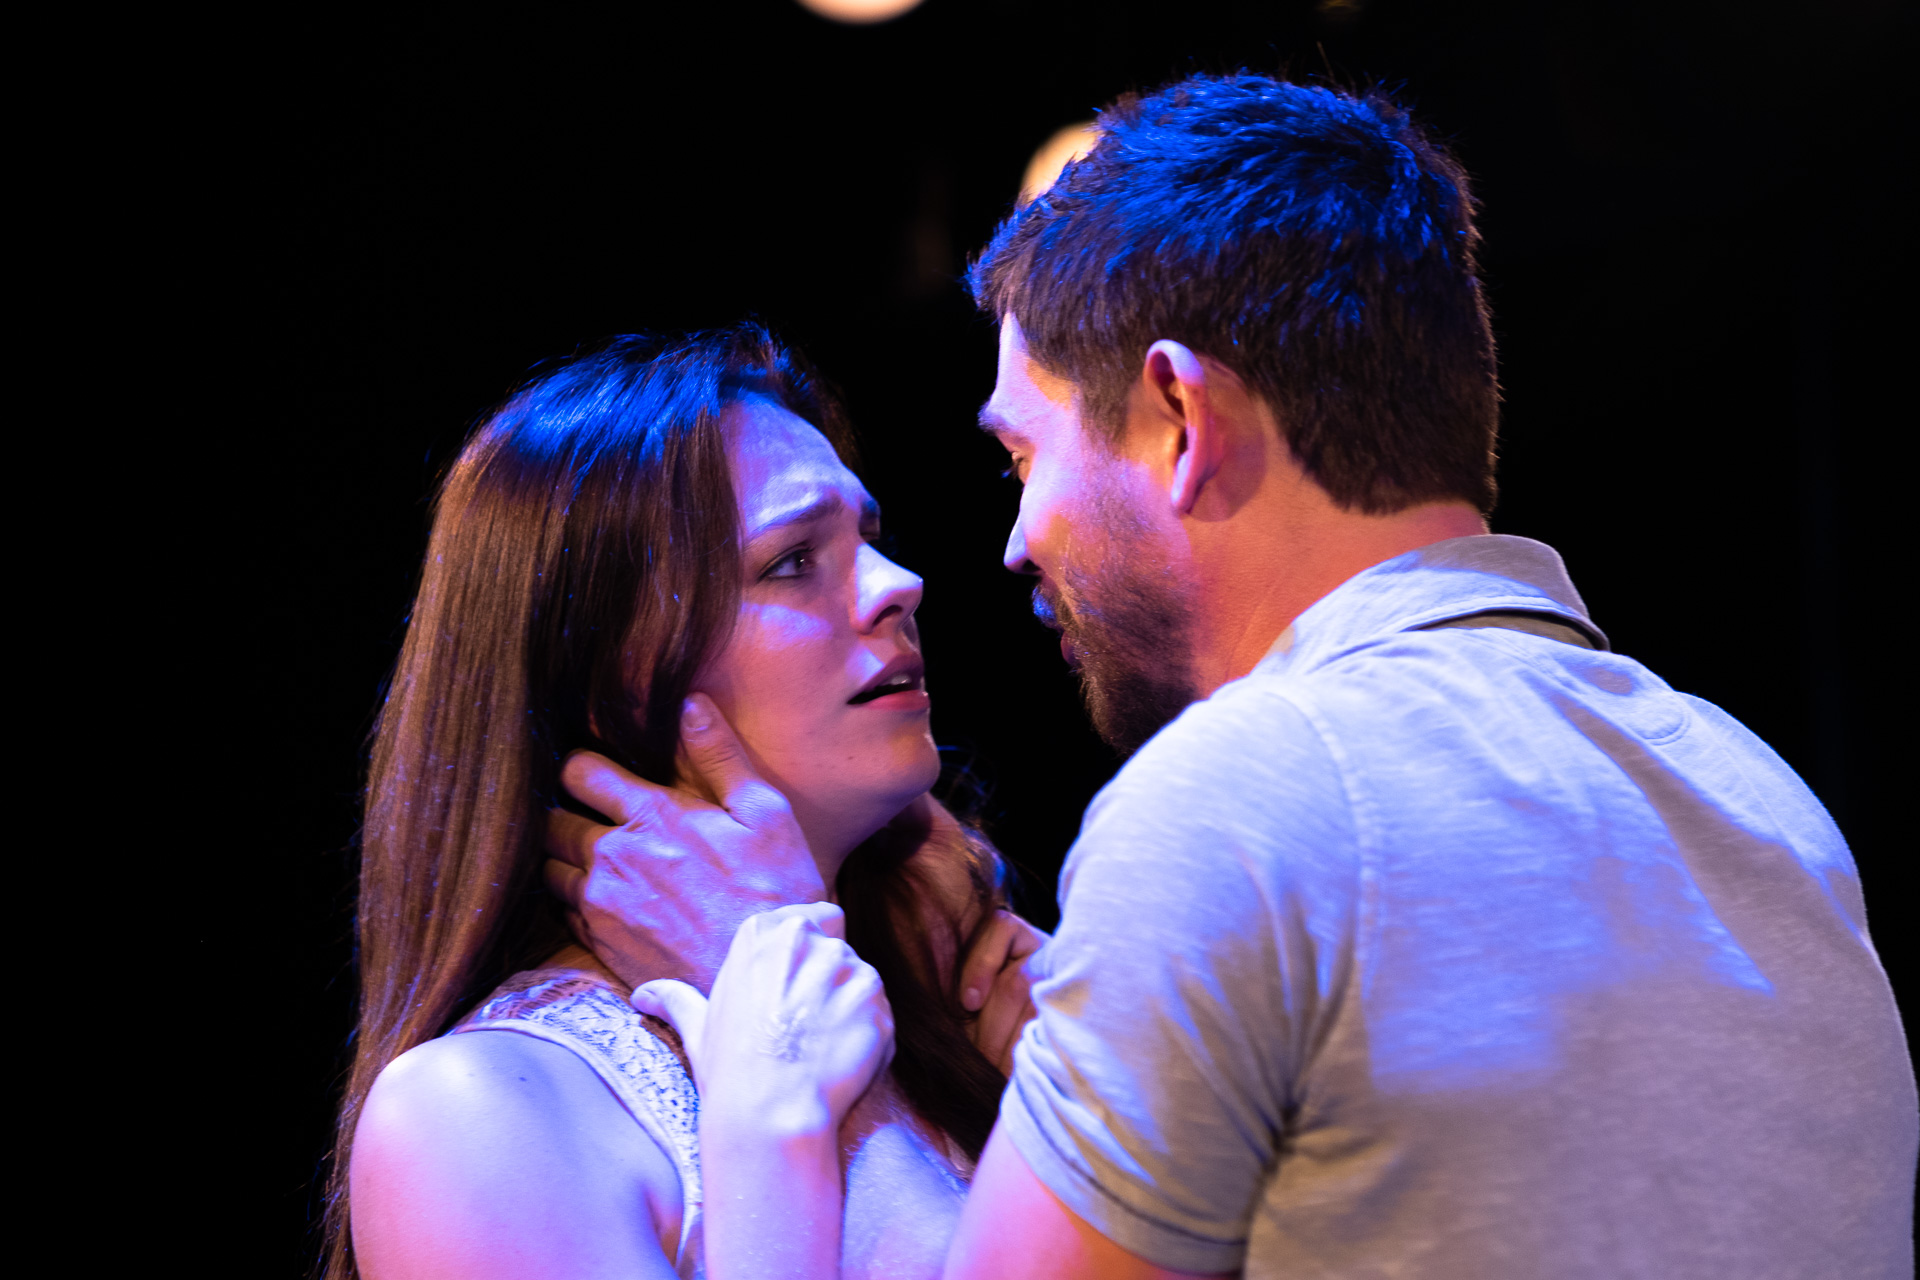 REVIEW: CONSTELLATIONS - BY JAMIE CHANDLER | THE SOPHIA NEWS